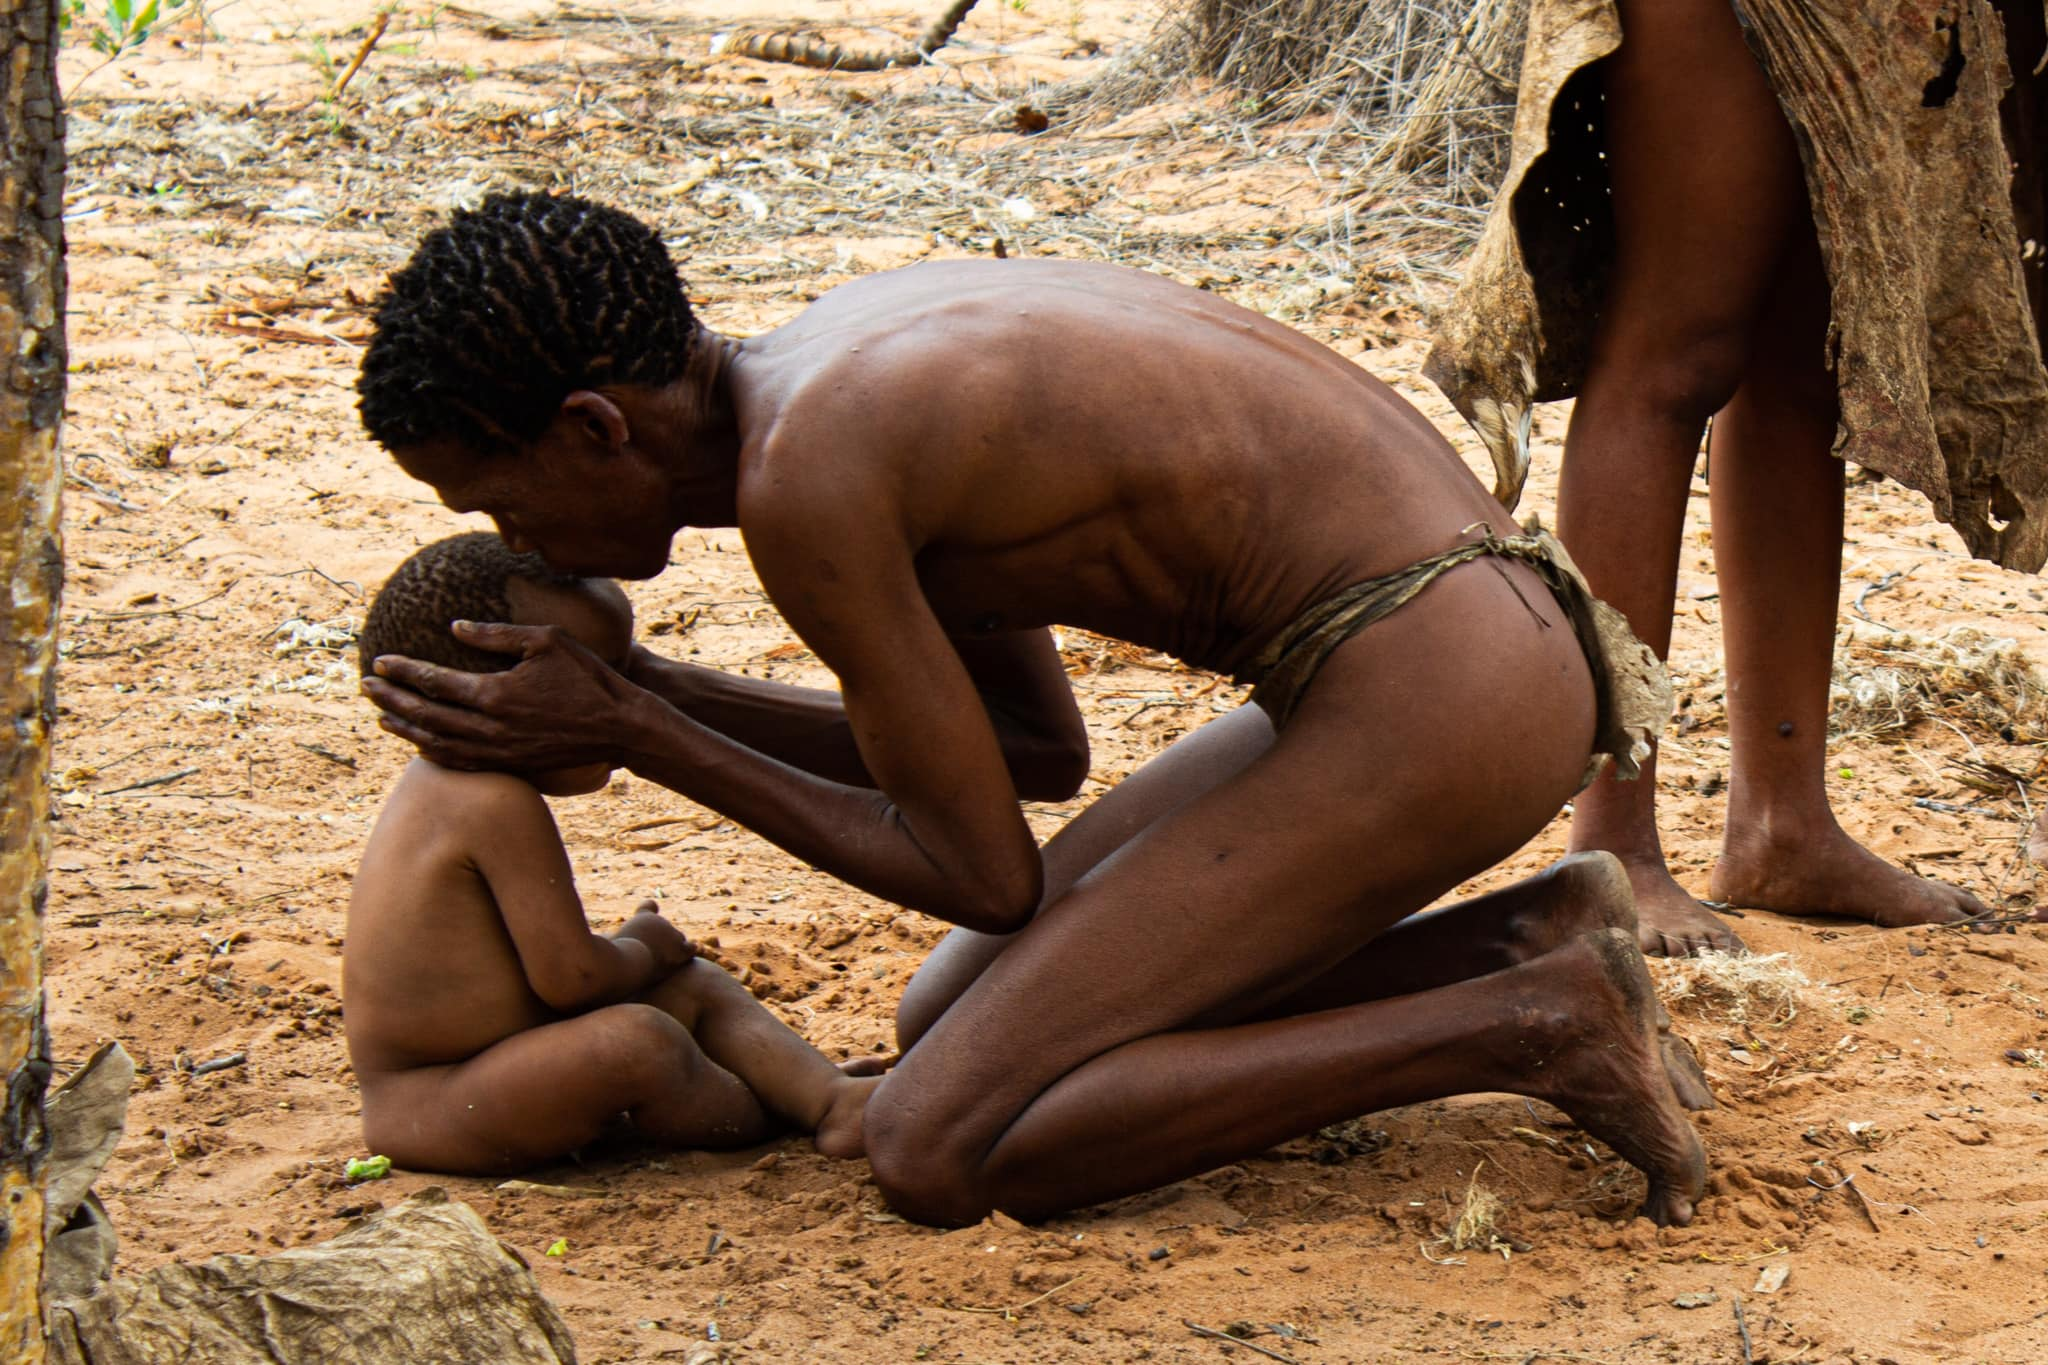 man wearing traditional clothing of the san bushmen kisses baby on head